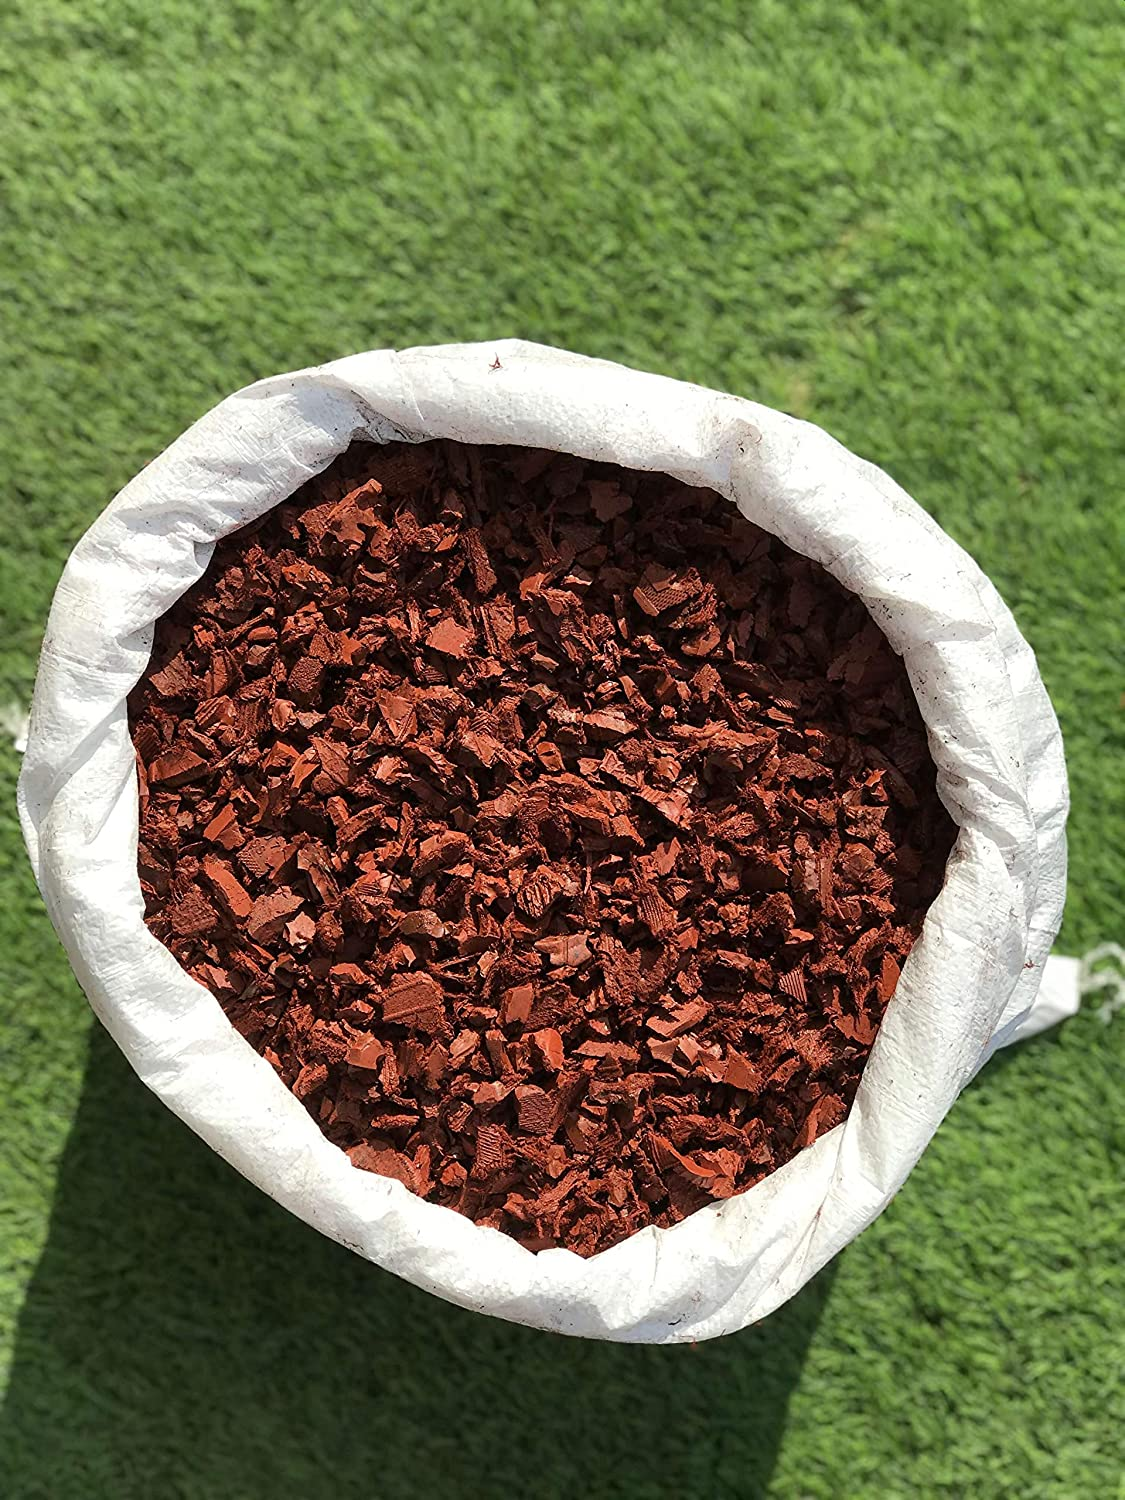 innovative design online shop authorized site ECO RED Decorative Rubber Garden Mulch/Play Bark chippings ...